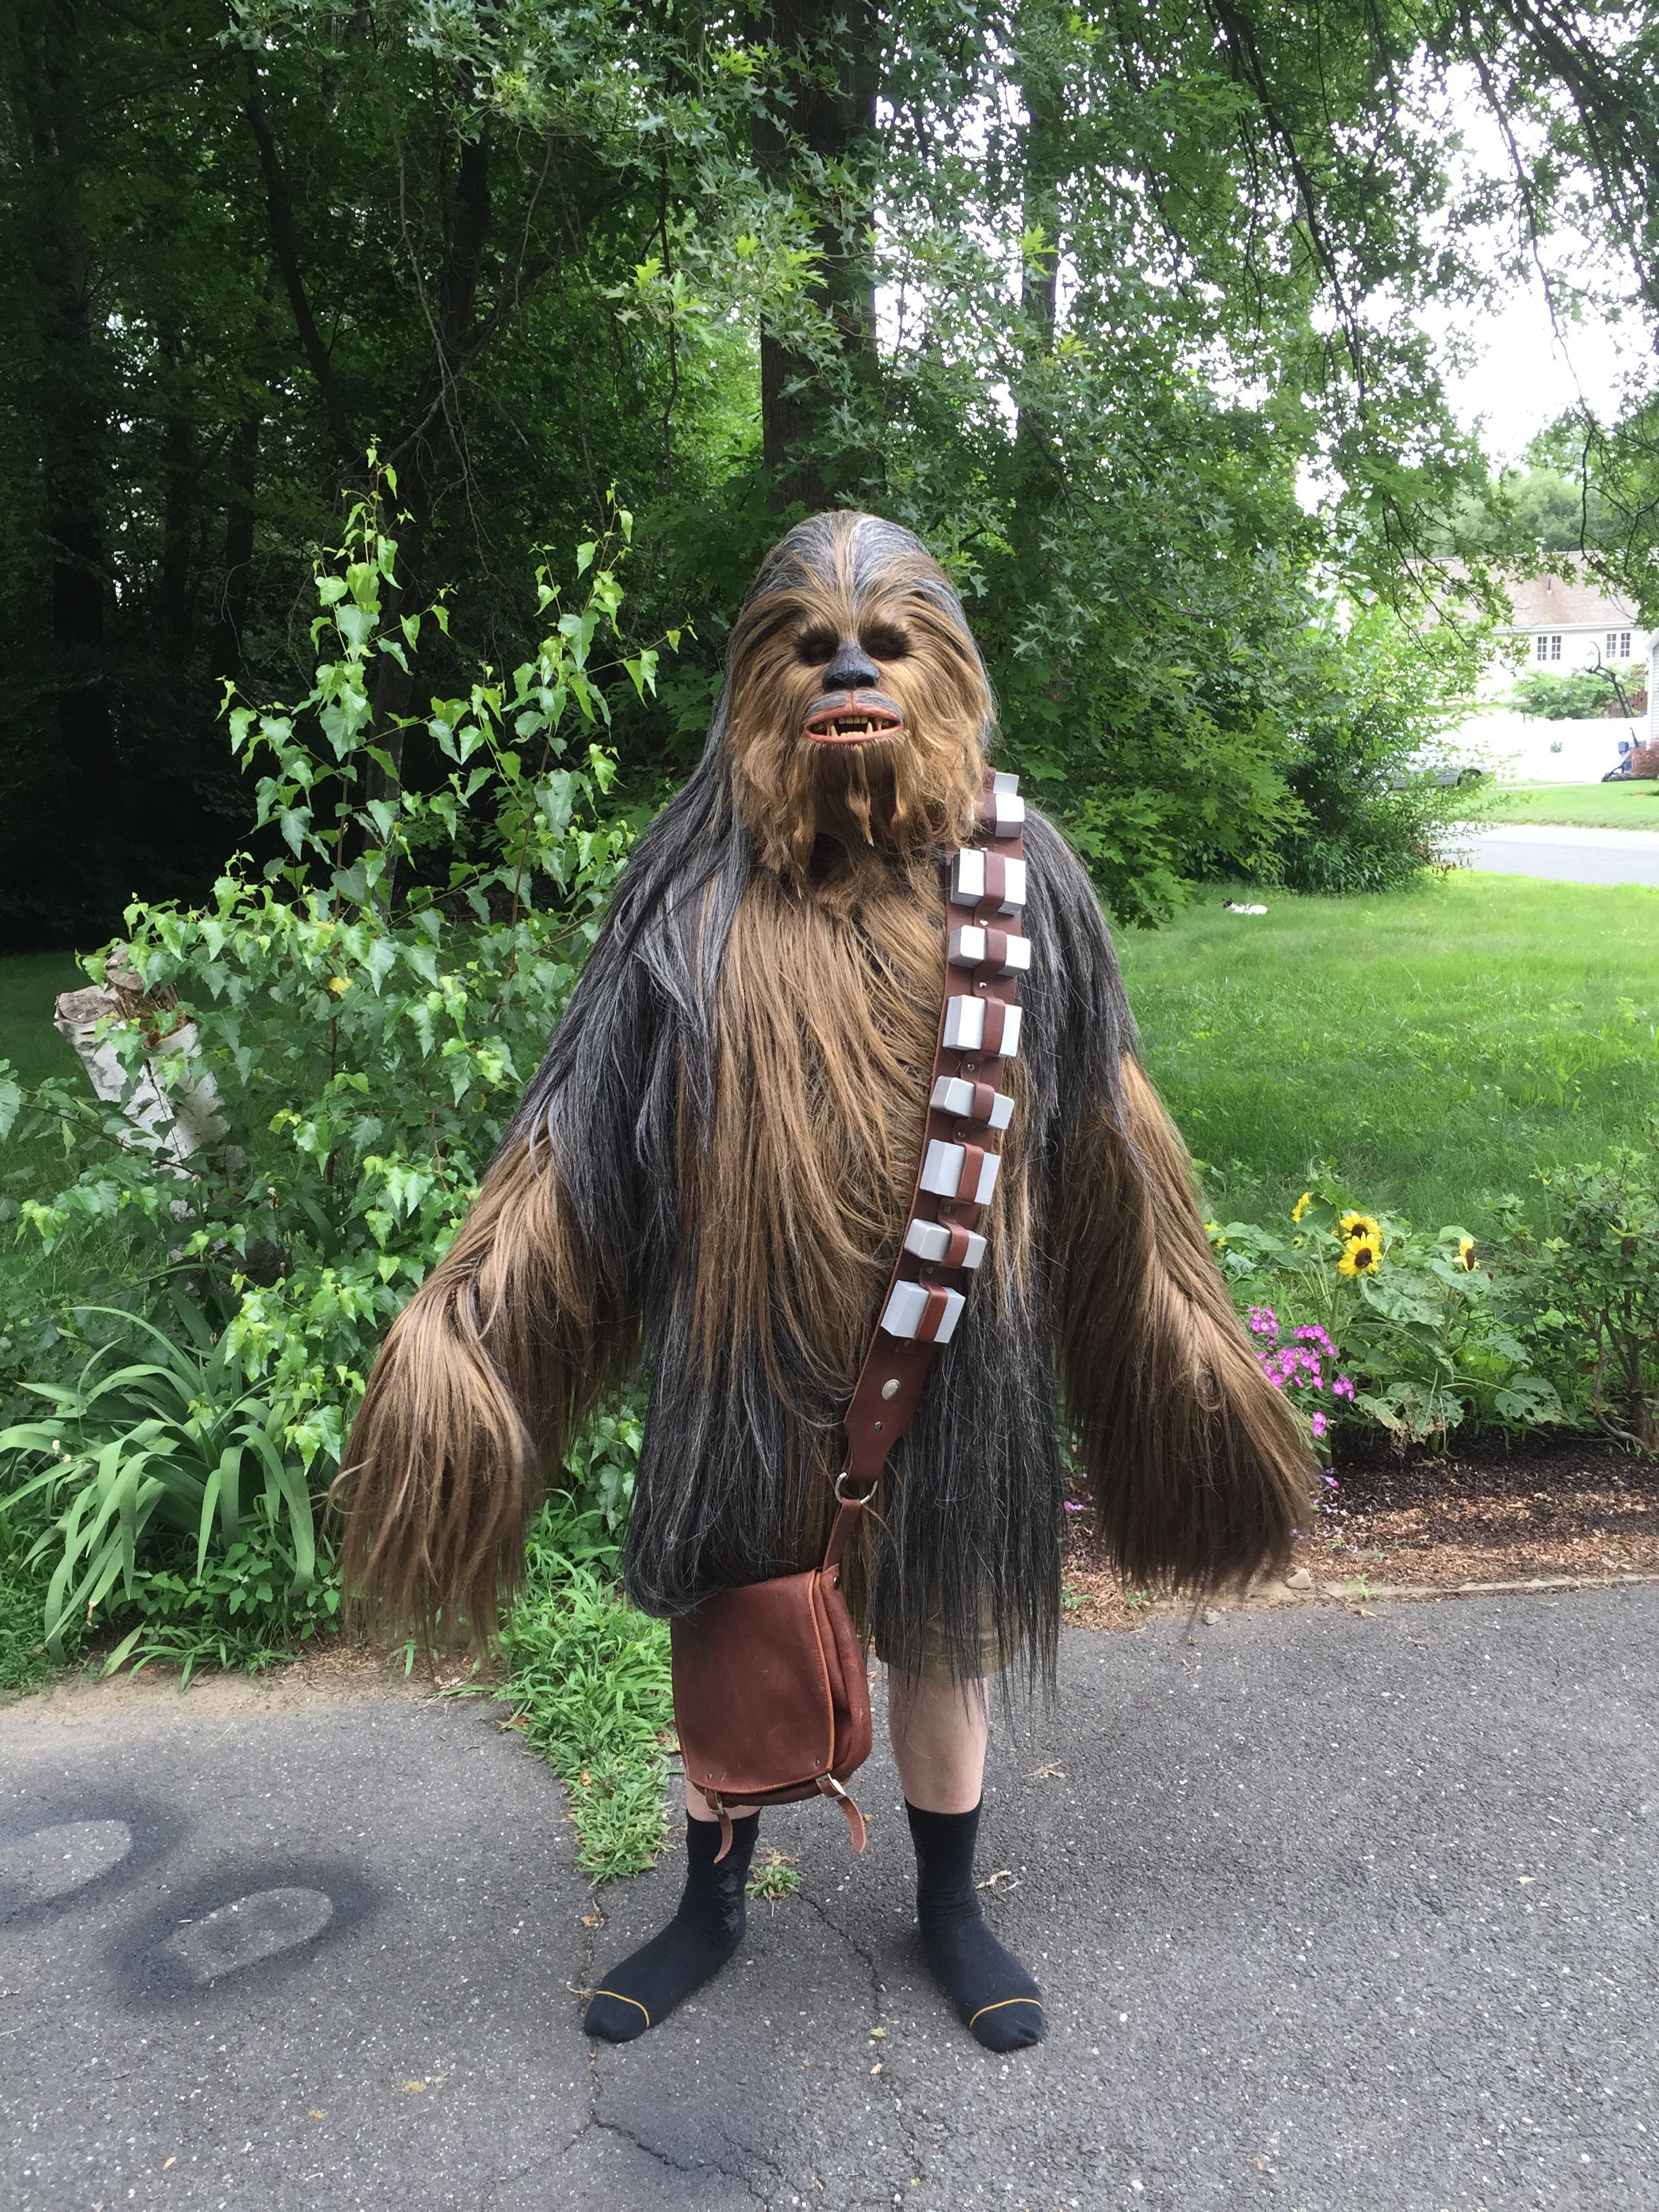 Watch This Guy Make The most Awesome Chewbacca Costume Youve Ever Seen chewie17